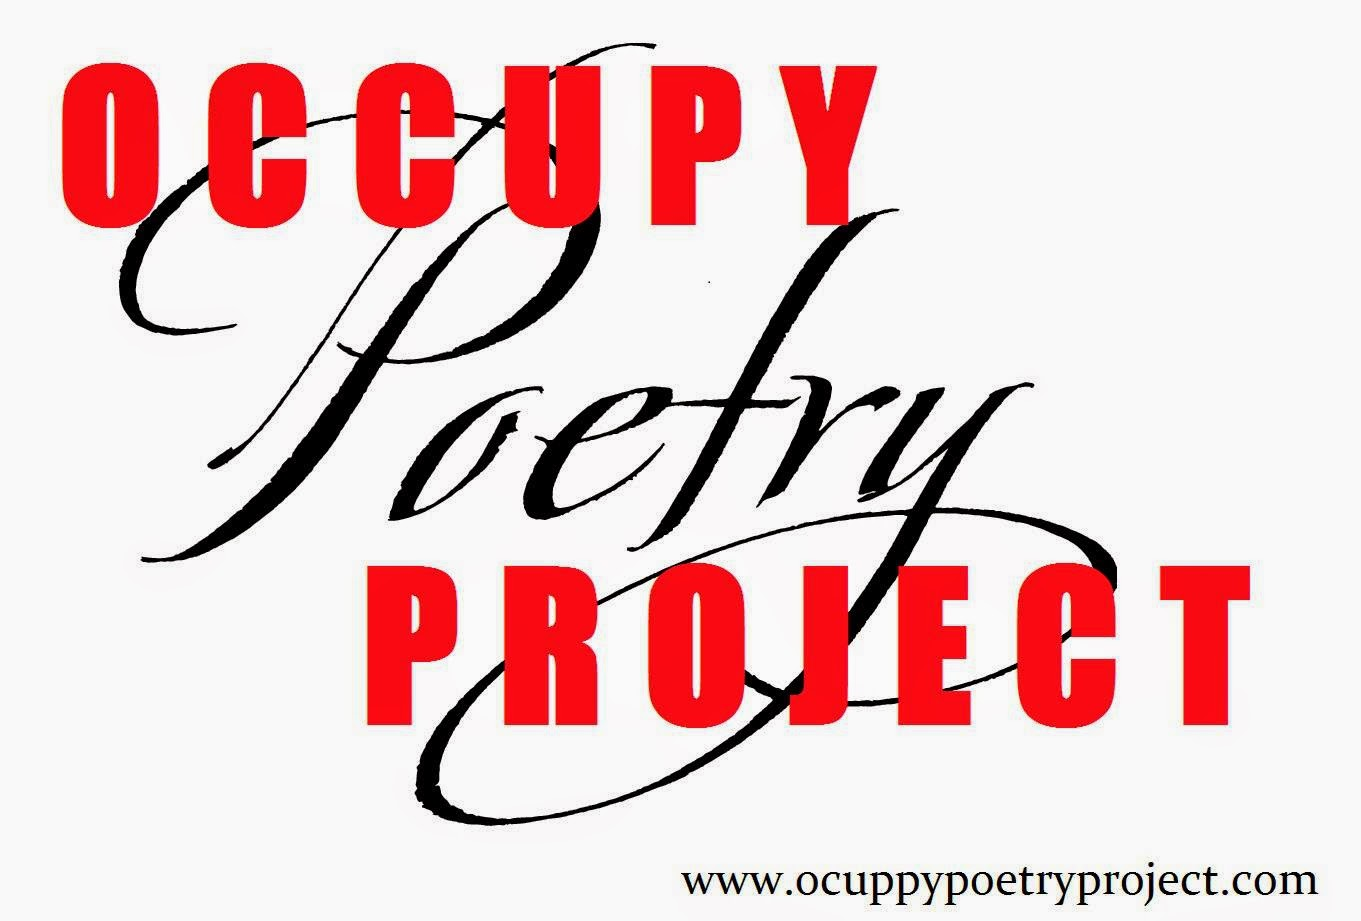 The Occupy Poetry Project